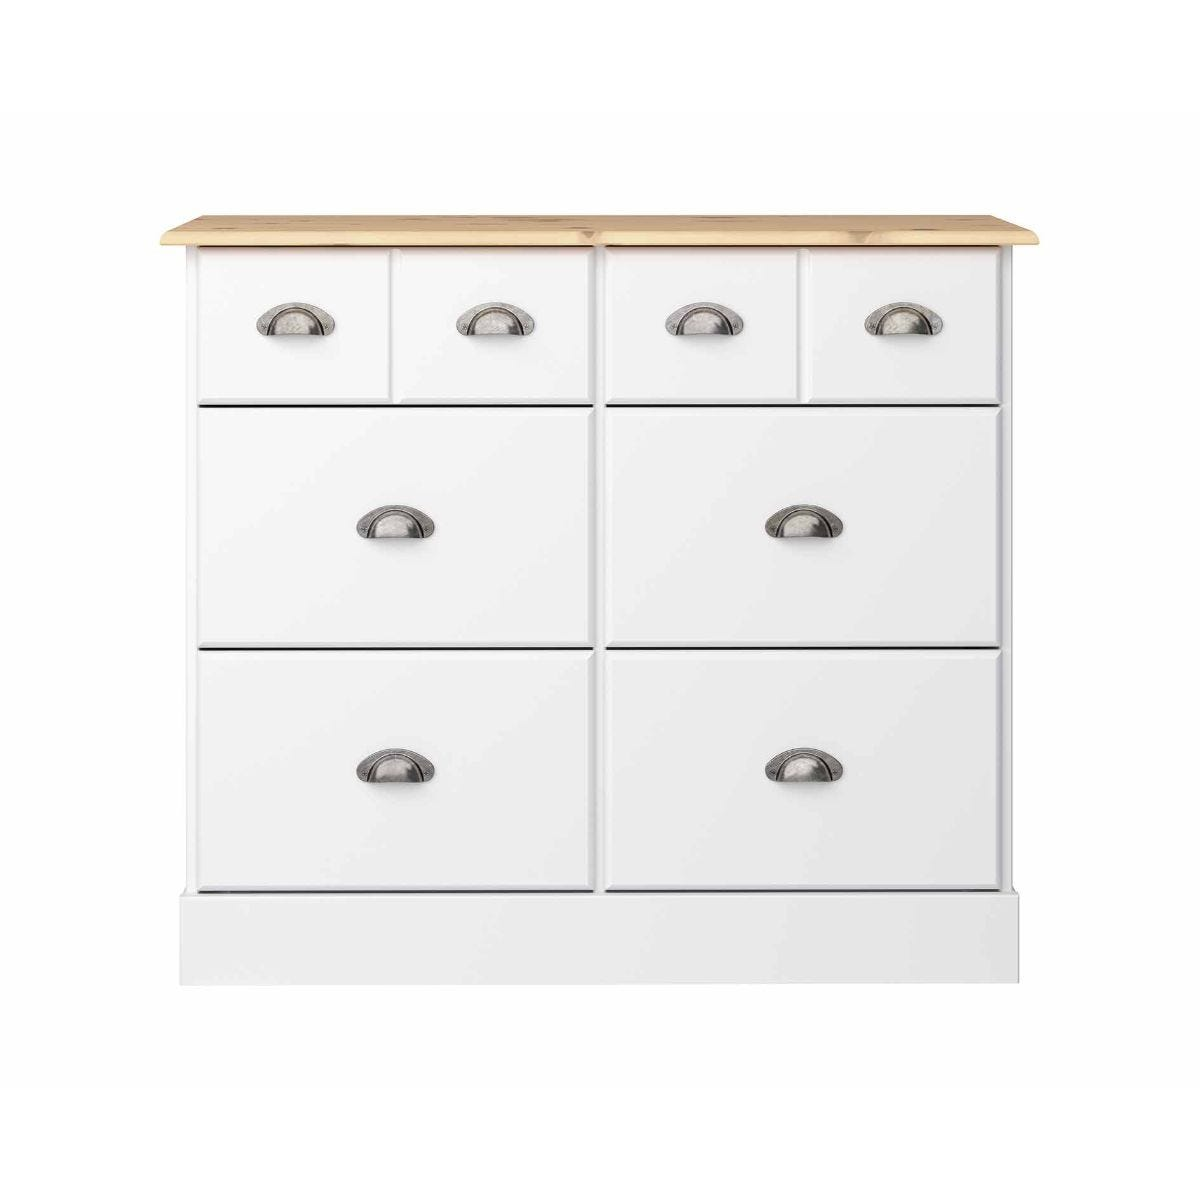 Steens Nola 4 Over 4 Wide Chest of Drawers, White